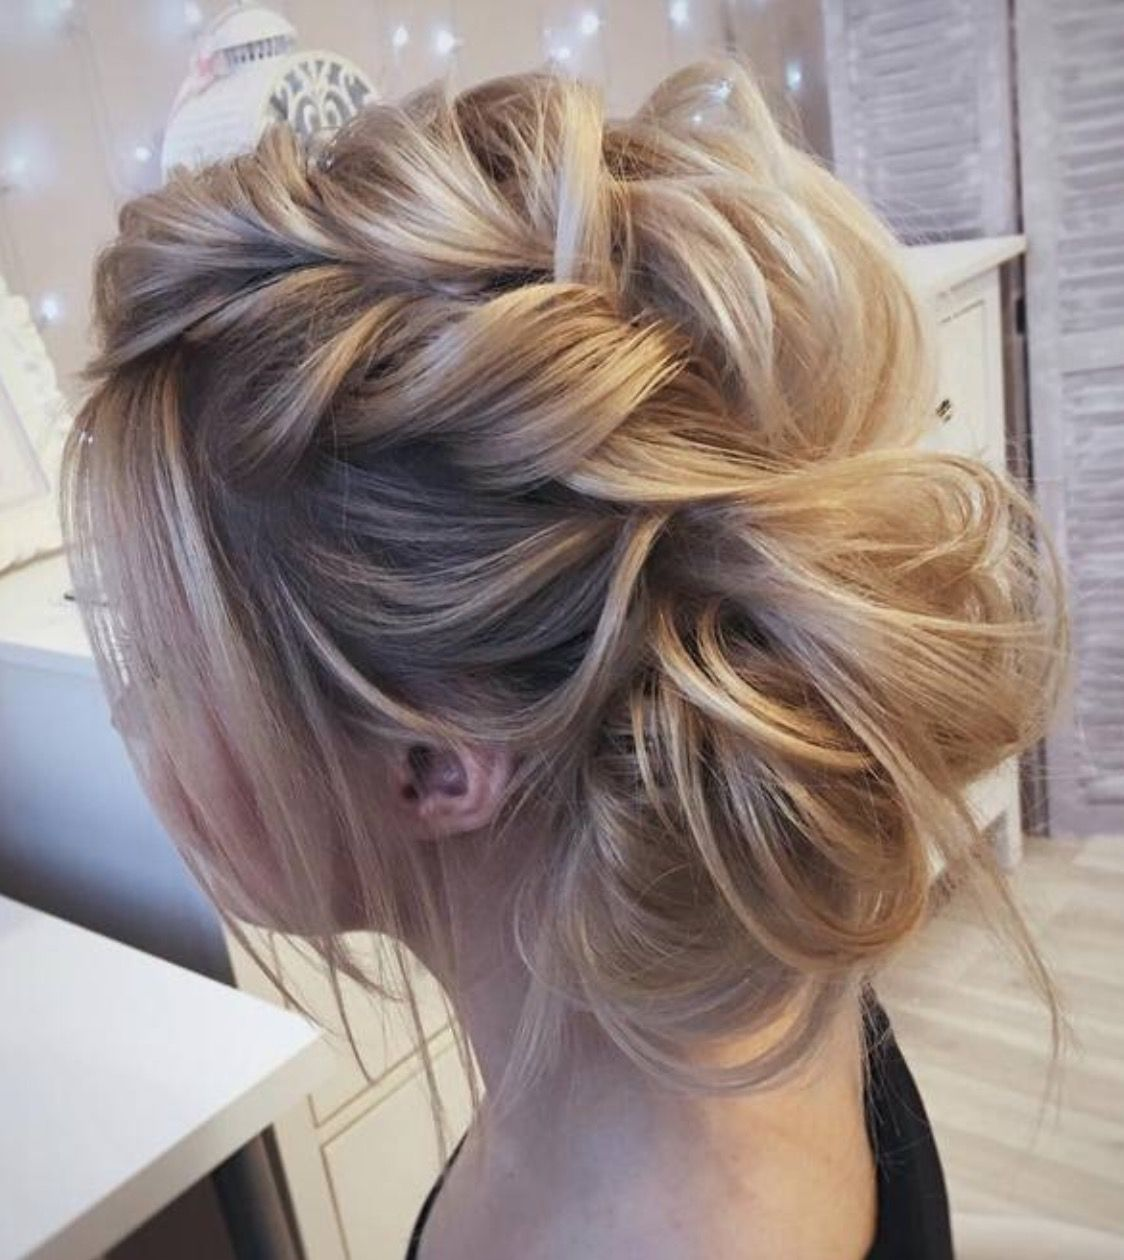 Hairstyles For Weddings Pinterest: Coral, Gold And Peach Beach